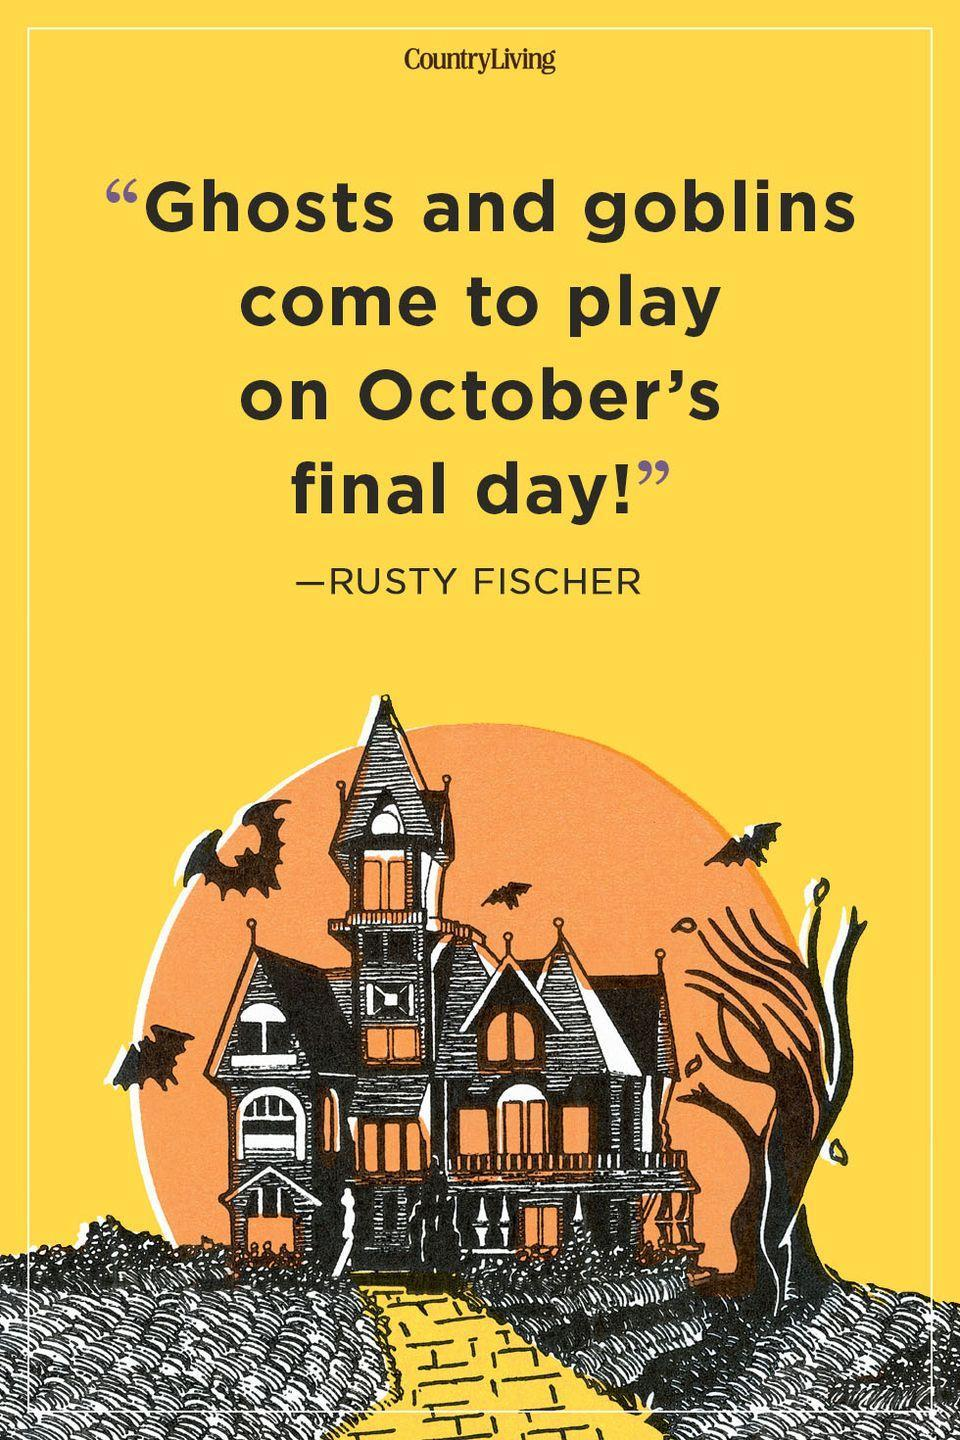 """<p>""""Ghosts and goblins come to play on October's final day!""""</p>"""